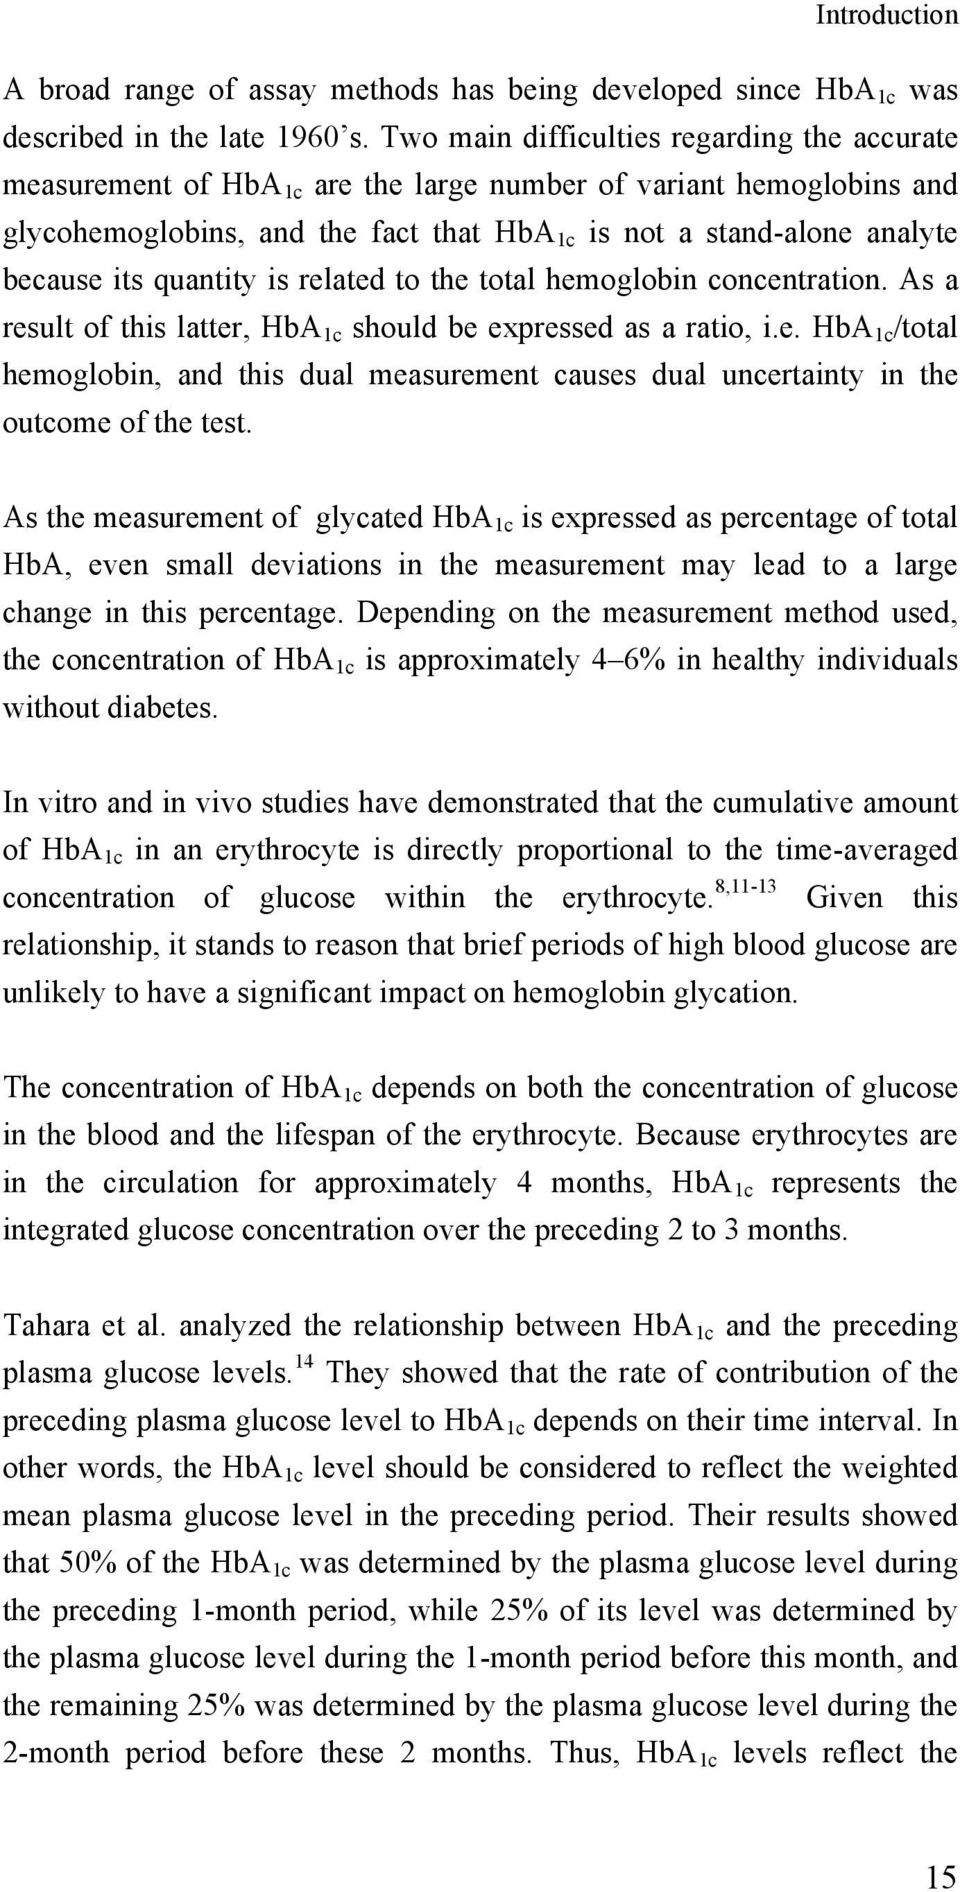 quantity is related to the total hemoglobin concentration. As a result of this latter, HbA 1c should be expressed as a ratio, i.e. HbA 1c /total hemoglobin, and this dual measurement causes dual uncertainty in the outcome of the test.